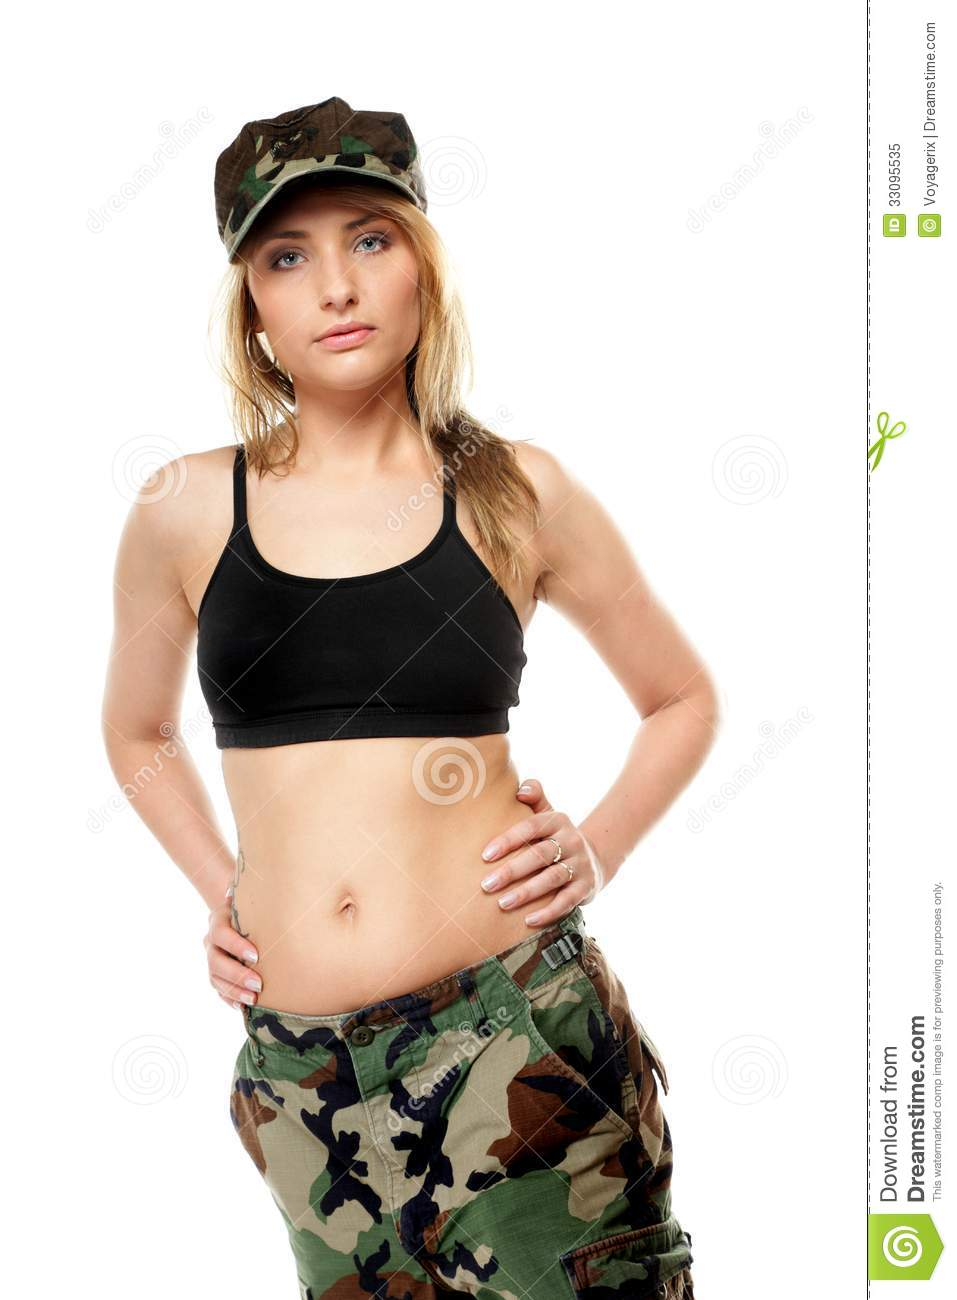 ... Woman In Military Clothes. Royalty Free Stock Photo - Image: 33095535: dreamstime.com/royalty-free-stock-photo-beautiful-woman-military...